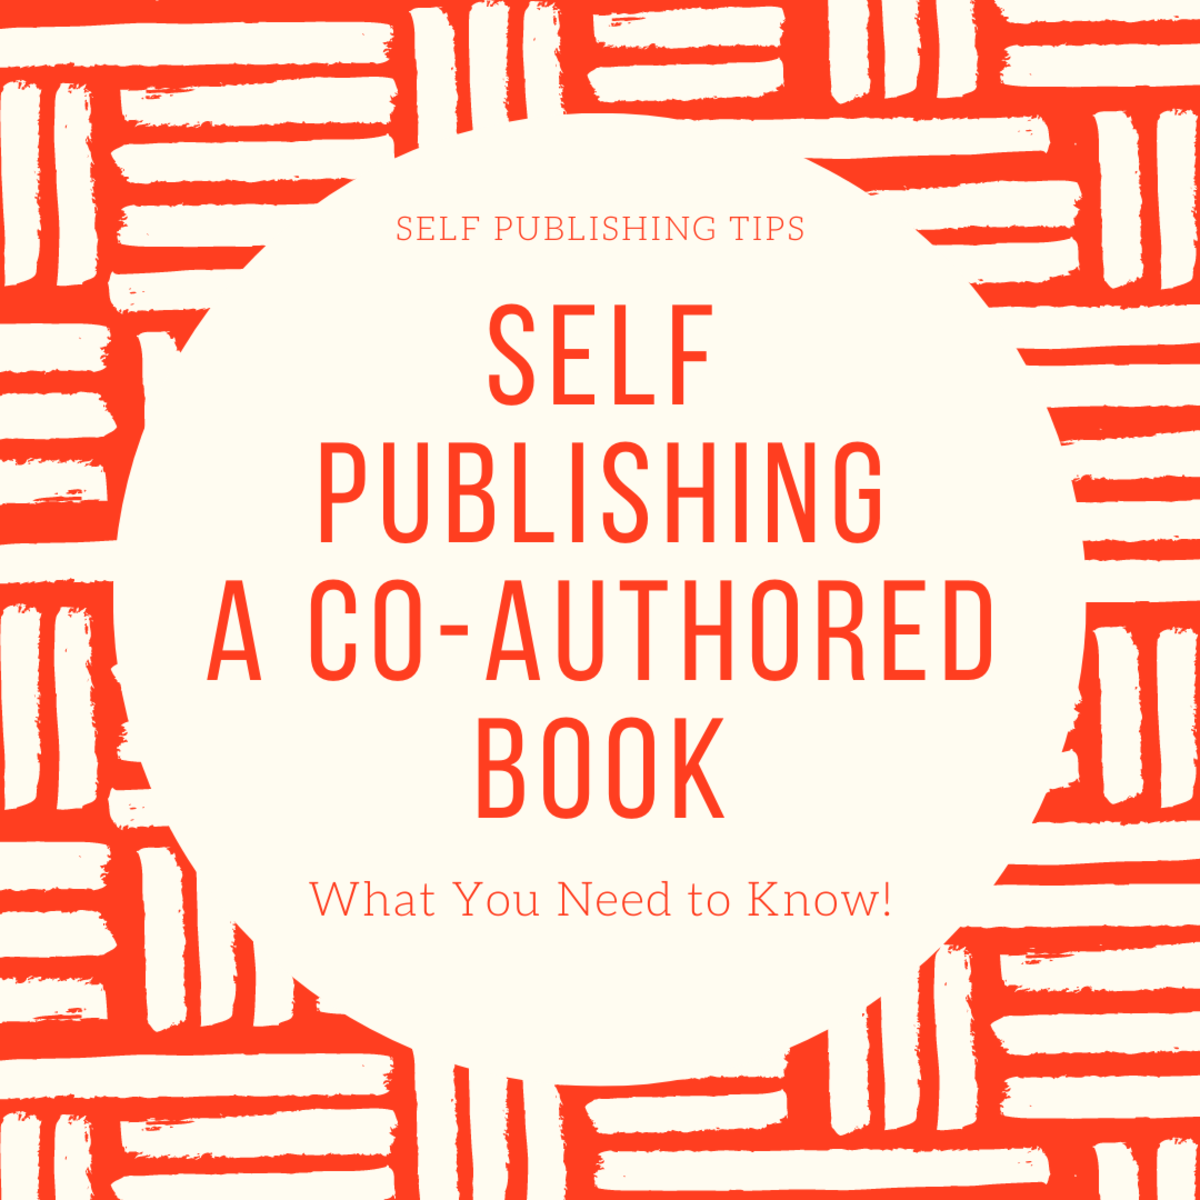 Co-authoring a self published book can be fun or frustrating! Find out what it takes.